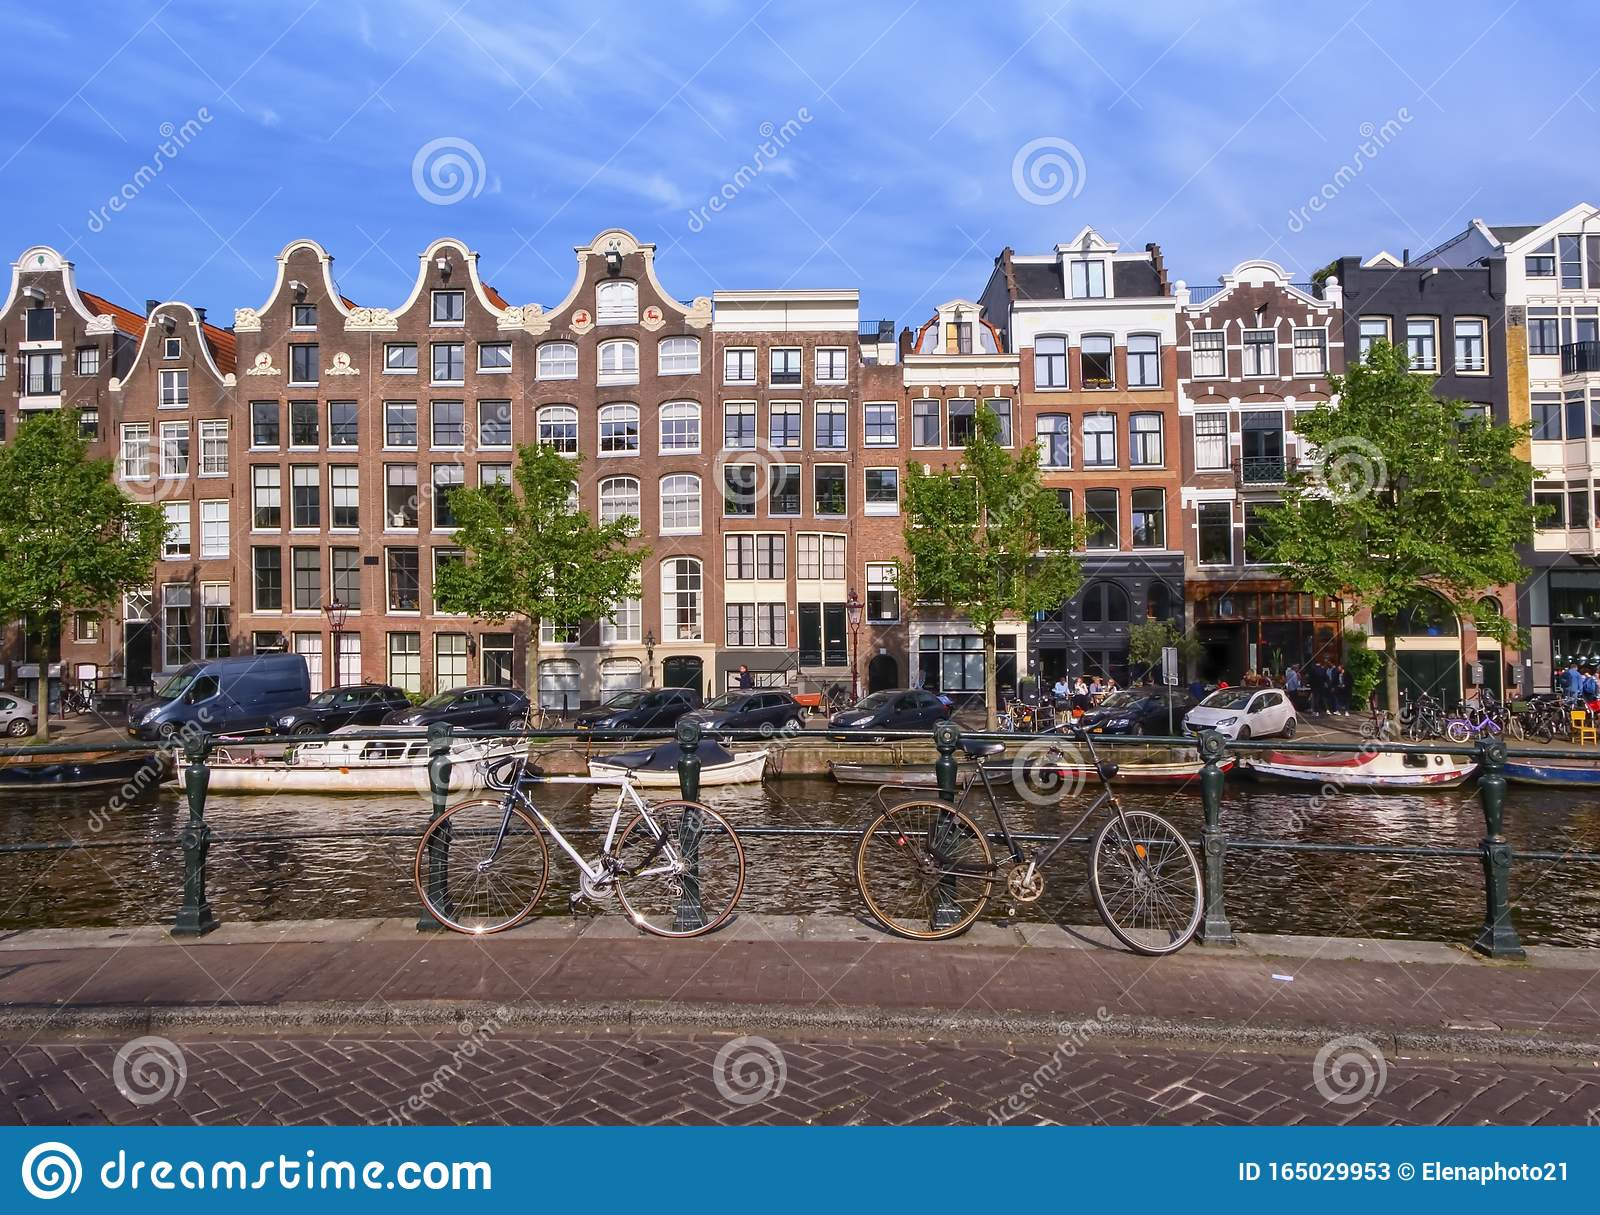 Typical buildings, canal and bikes in Amsterdam, Netherlands